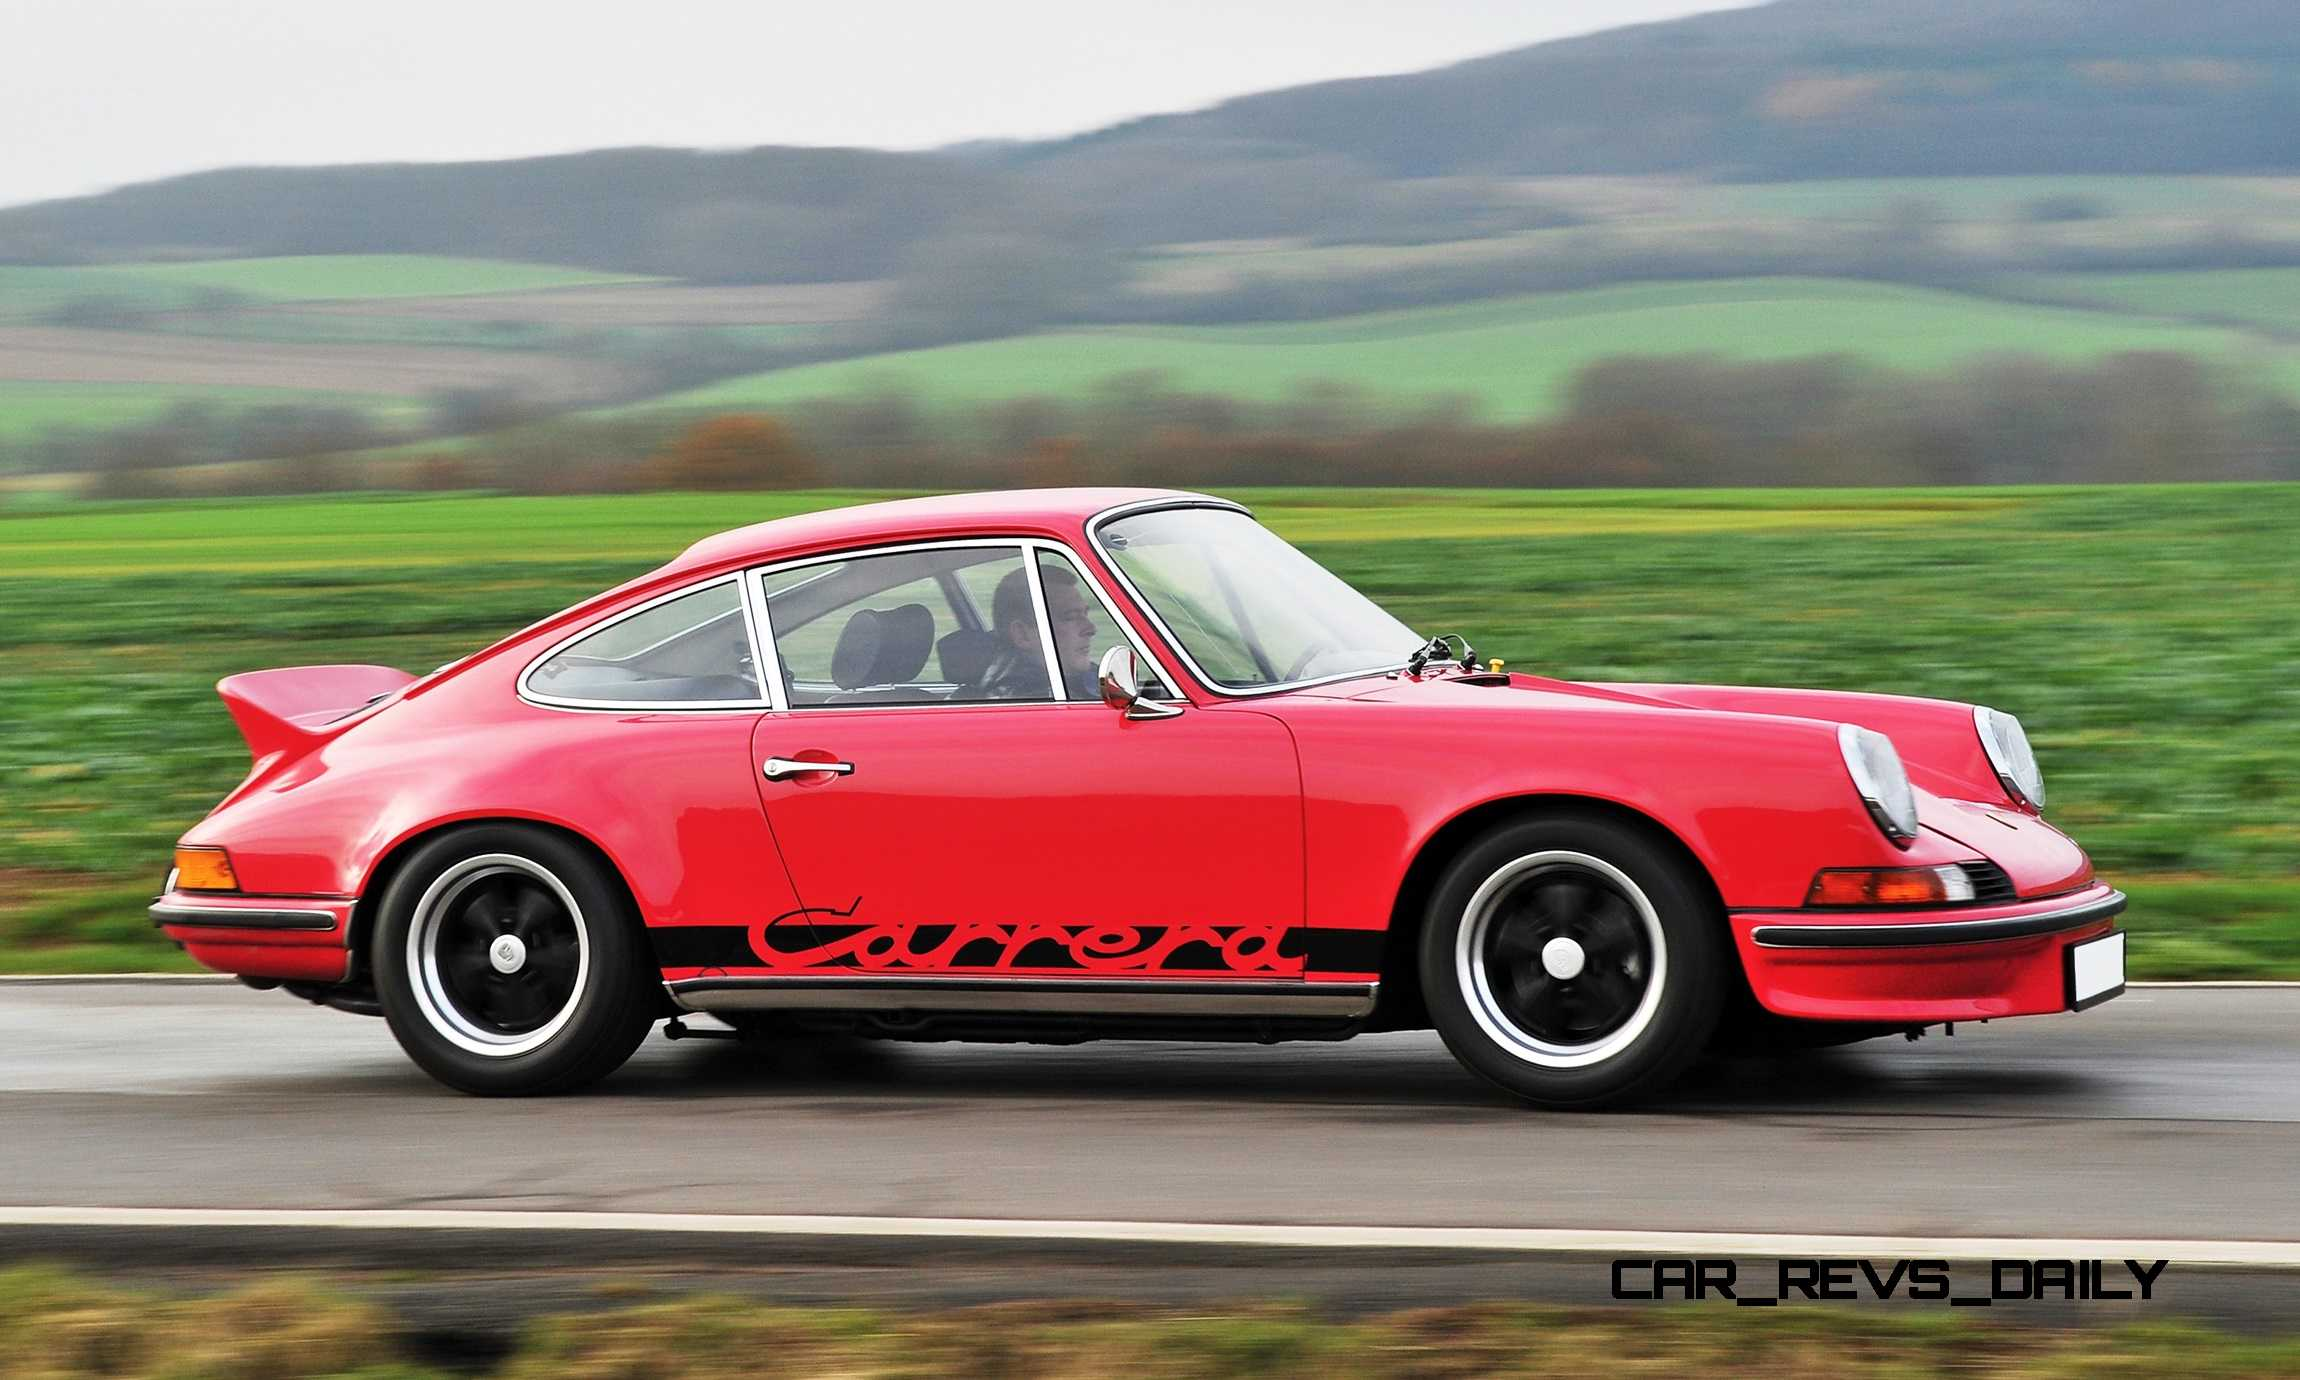 Porsche Carrera Rs Touring on Horizontally Opposed 4 Cylinder Engine